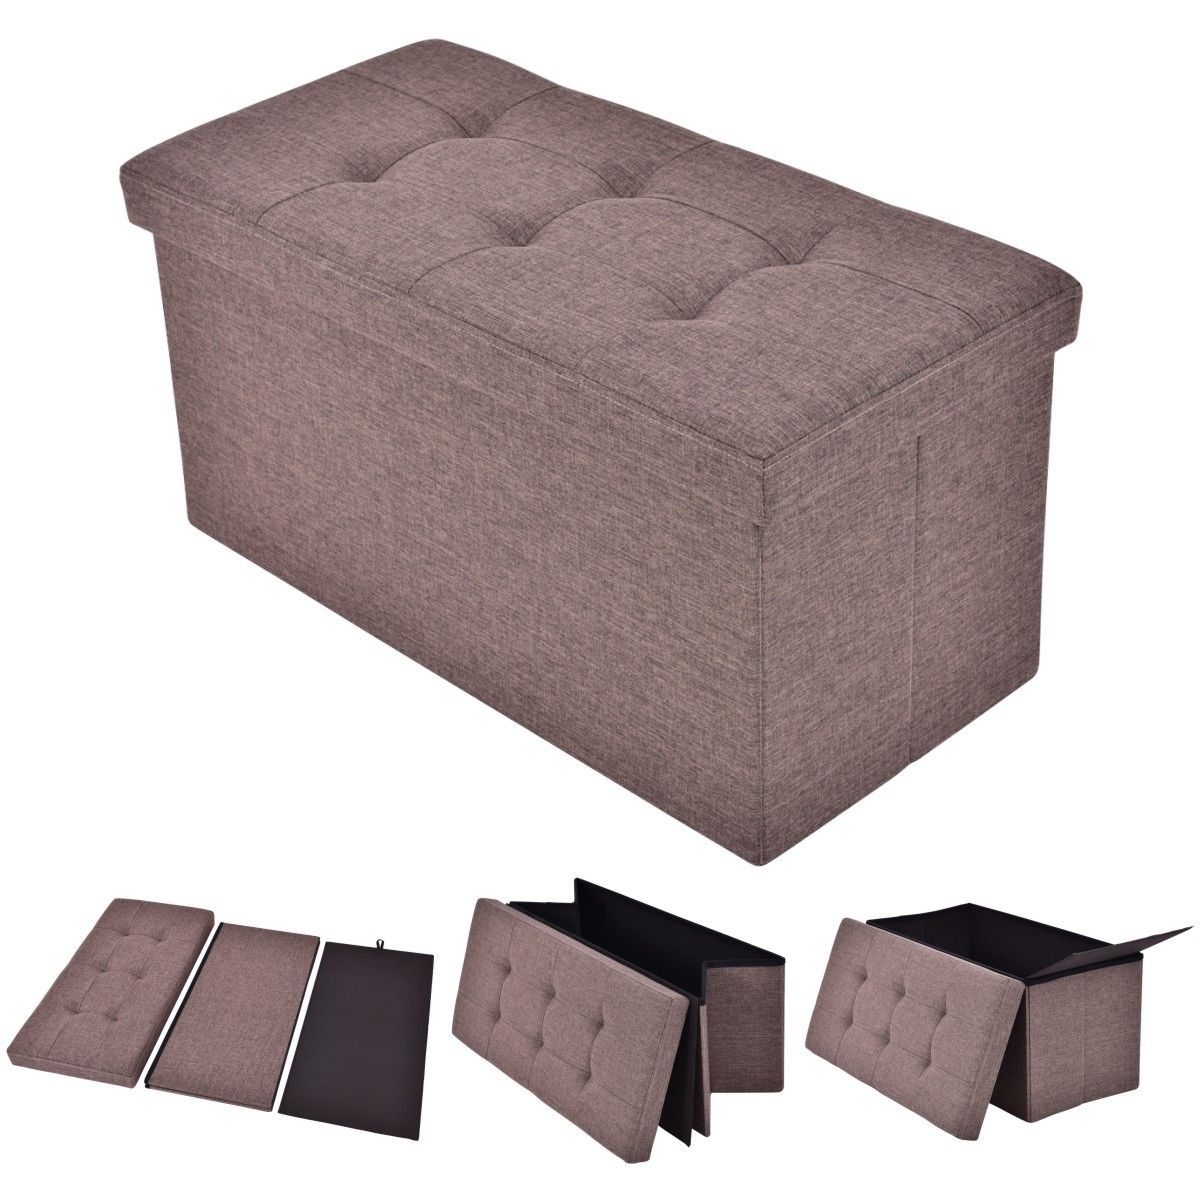 Costway Folding Rect Ottoman Bench Storage Stool Box Footrest Furniture Decor Brown